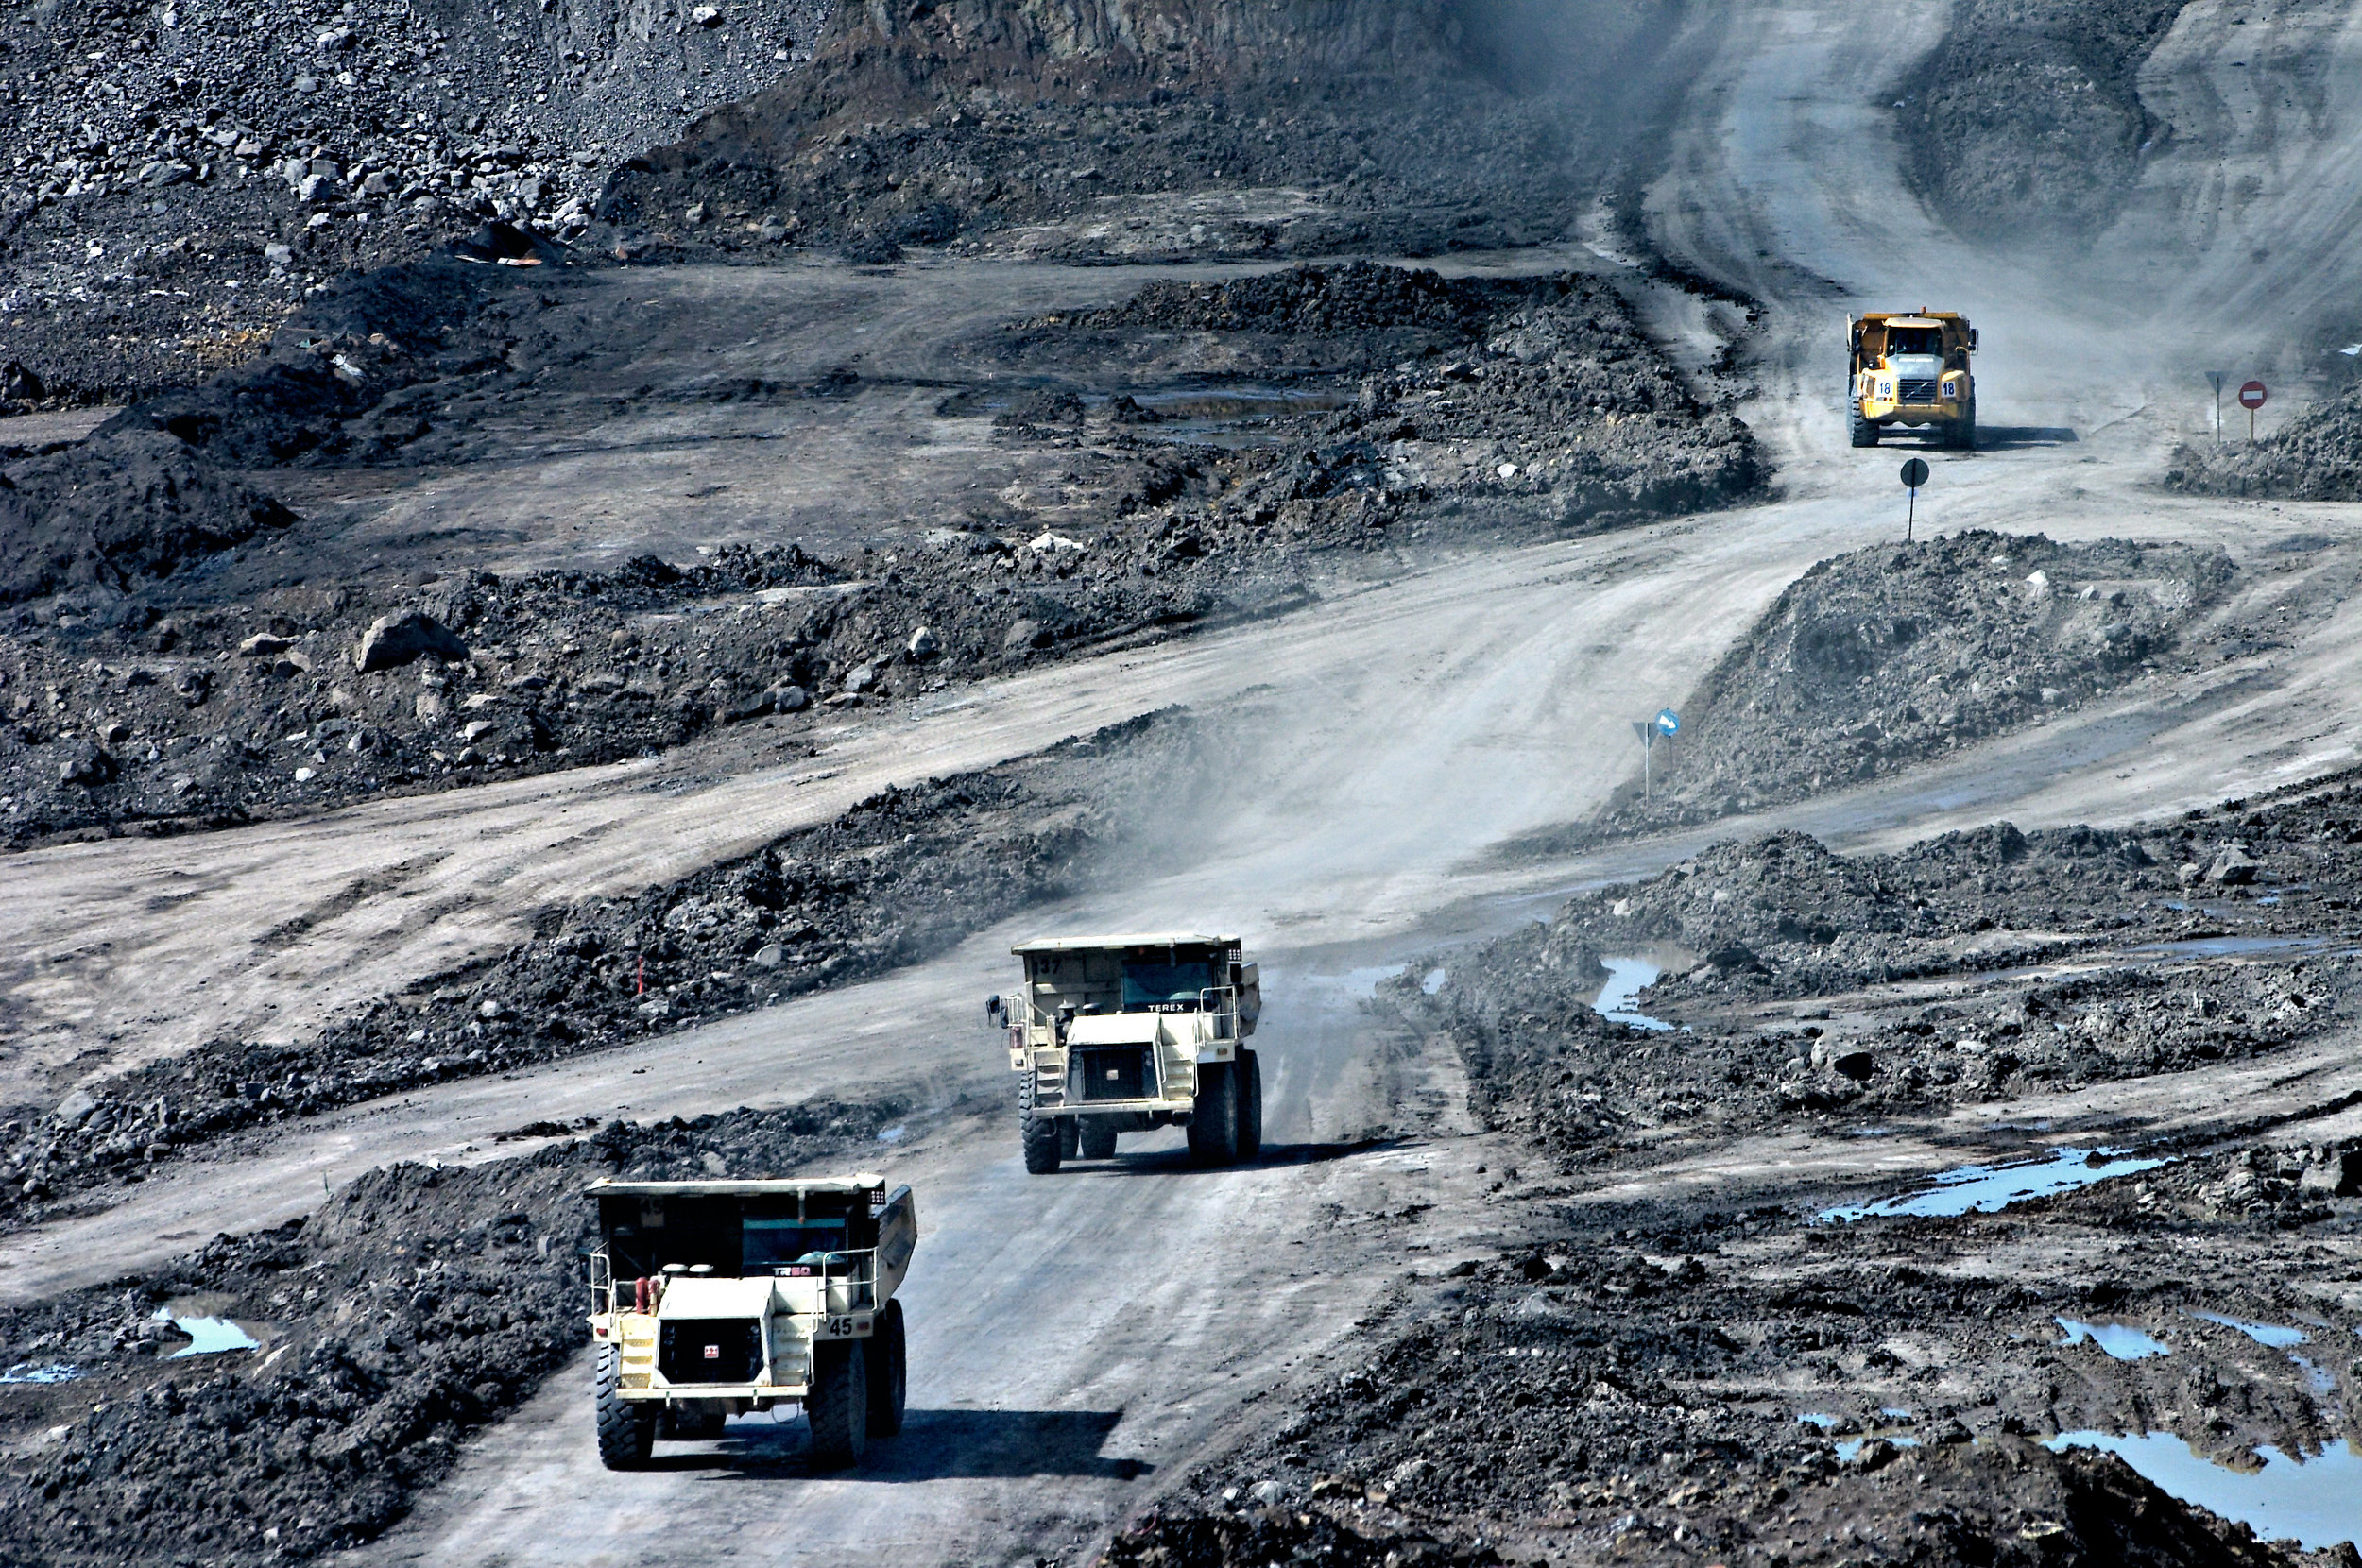 Countries where coal is commonly burned experience higher levels of air pollution, according to researchers.